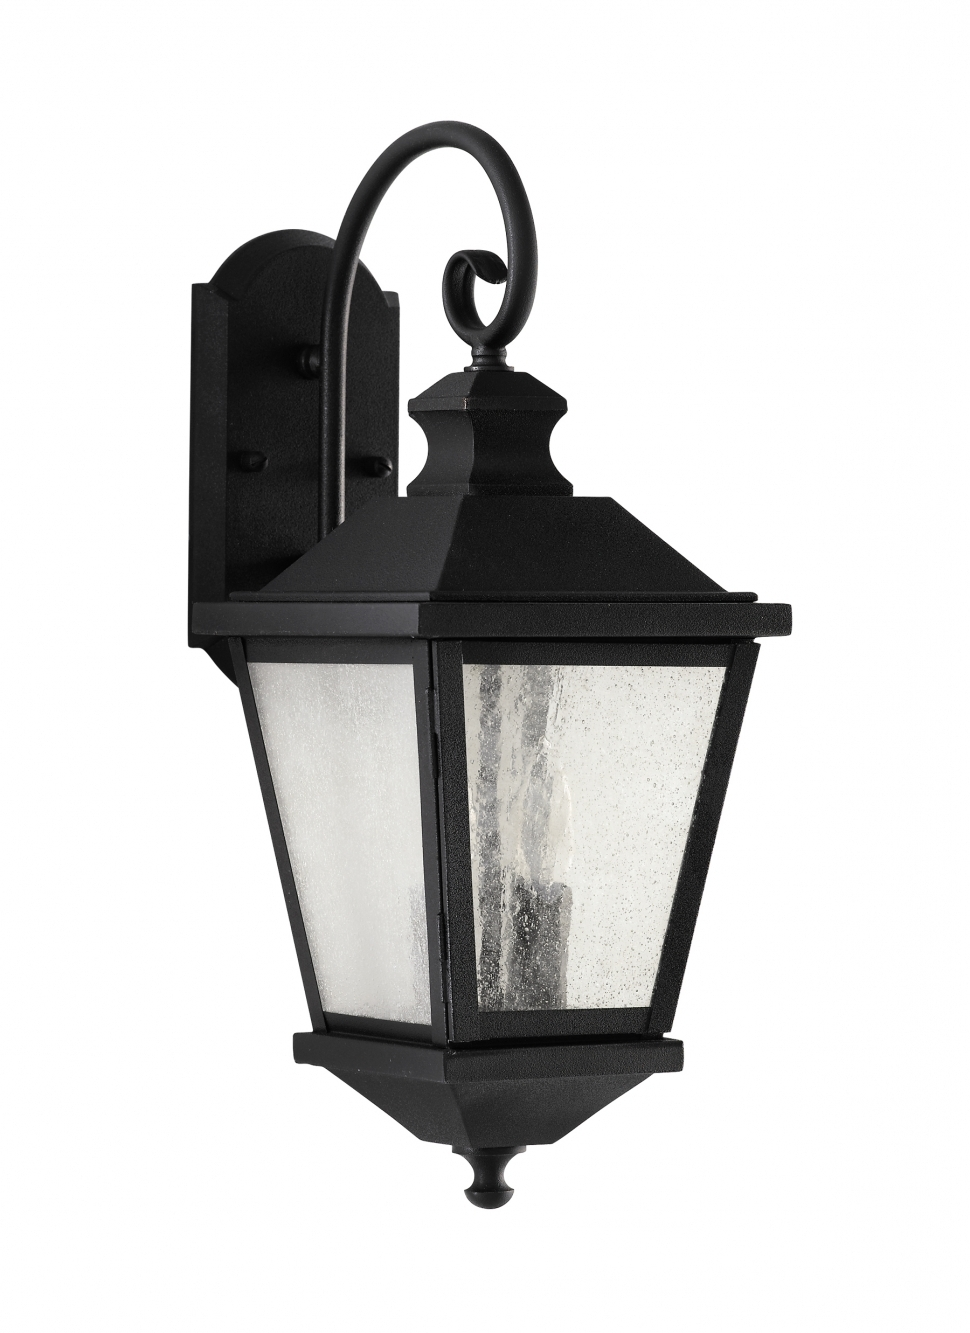 Electrical Wiring : Awesome Outdoor Ceiling Light With Outlet And Intended For Most Recently Released Outdoor Ceiling Light With Outlet (Gallery 4 of 20)